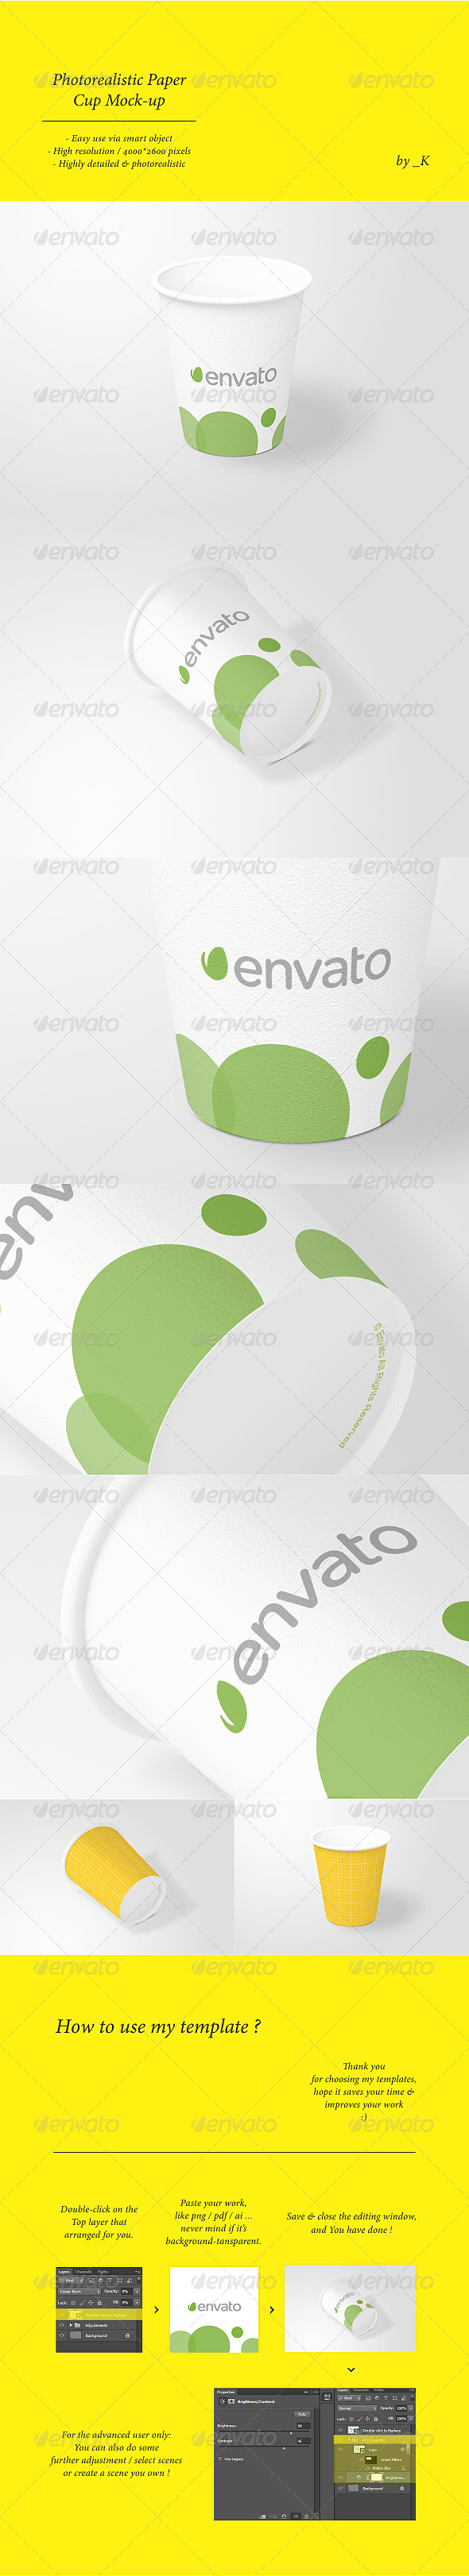 Photorealistic Paper Cup Mock-up - Food and Drink Packaging